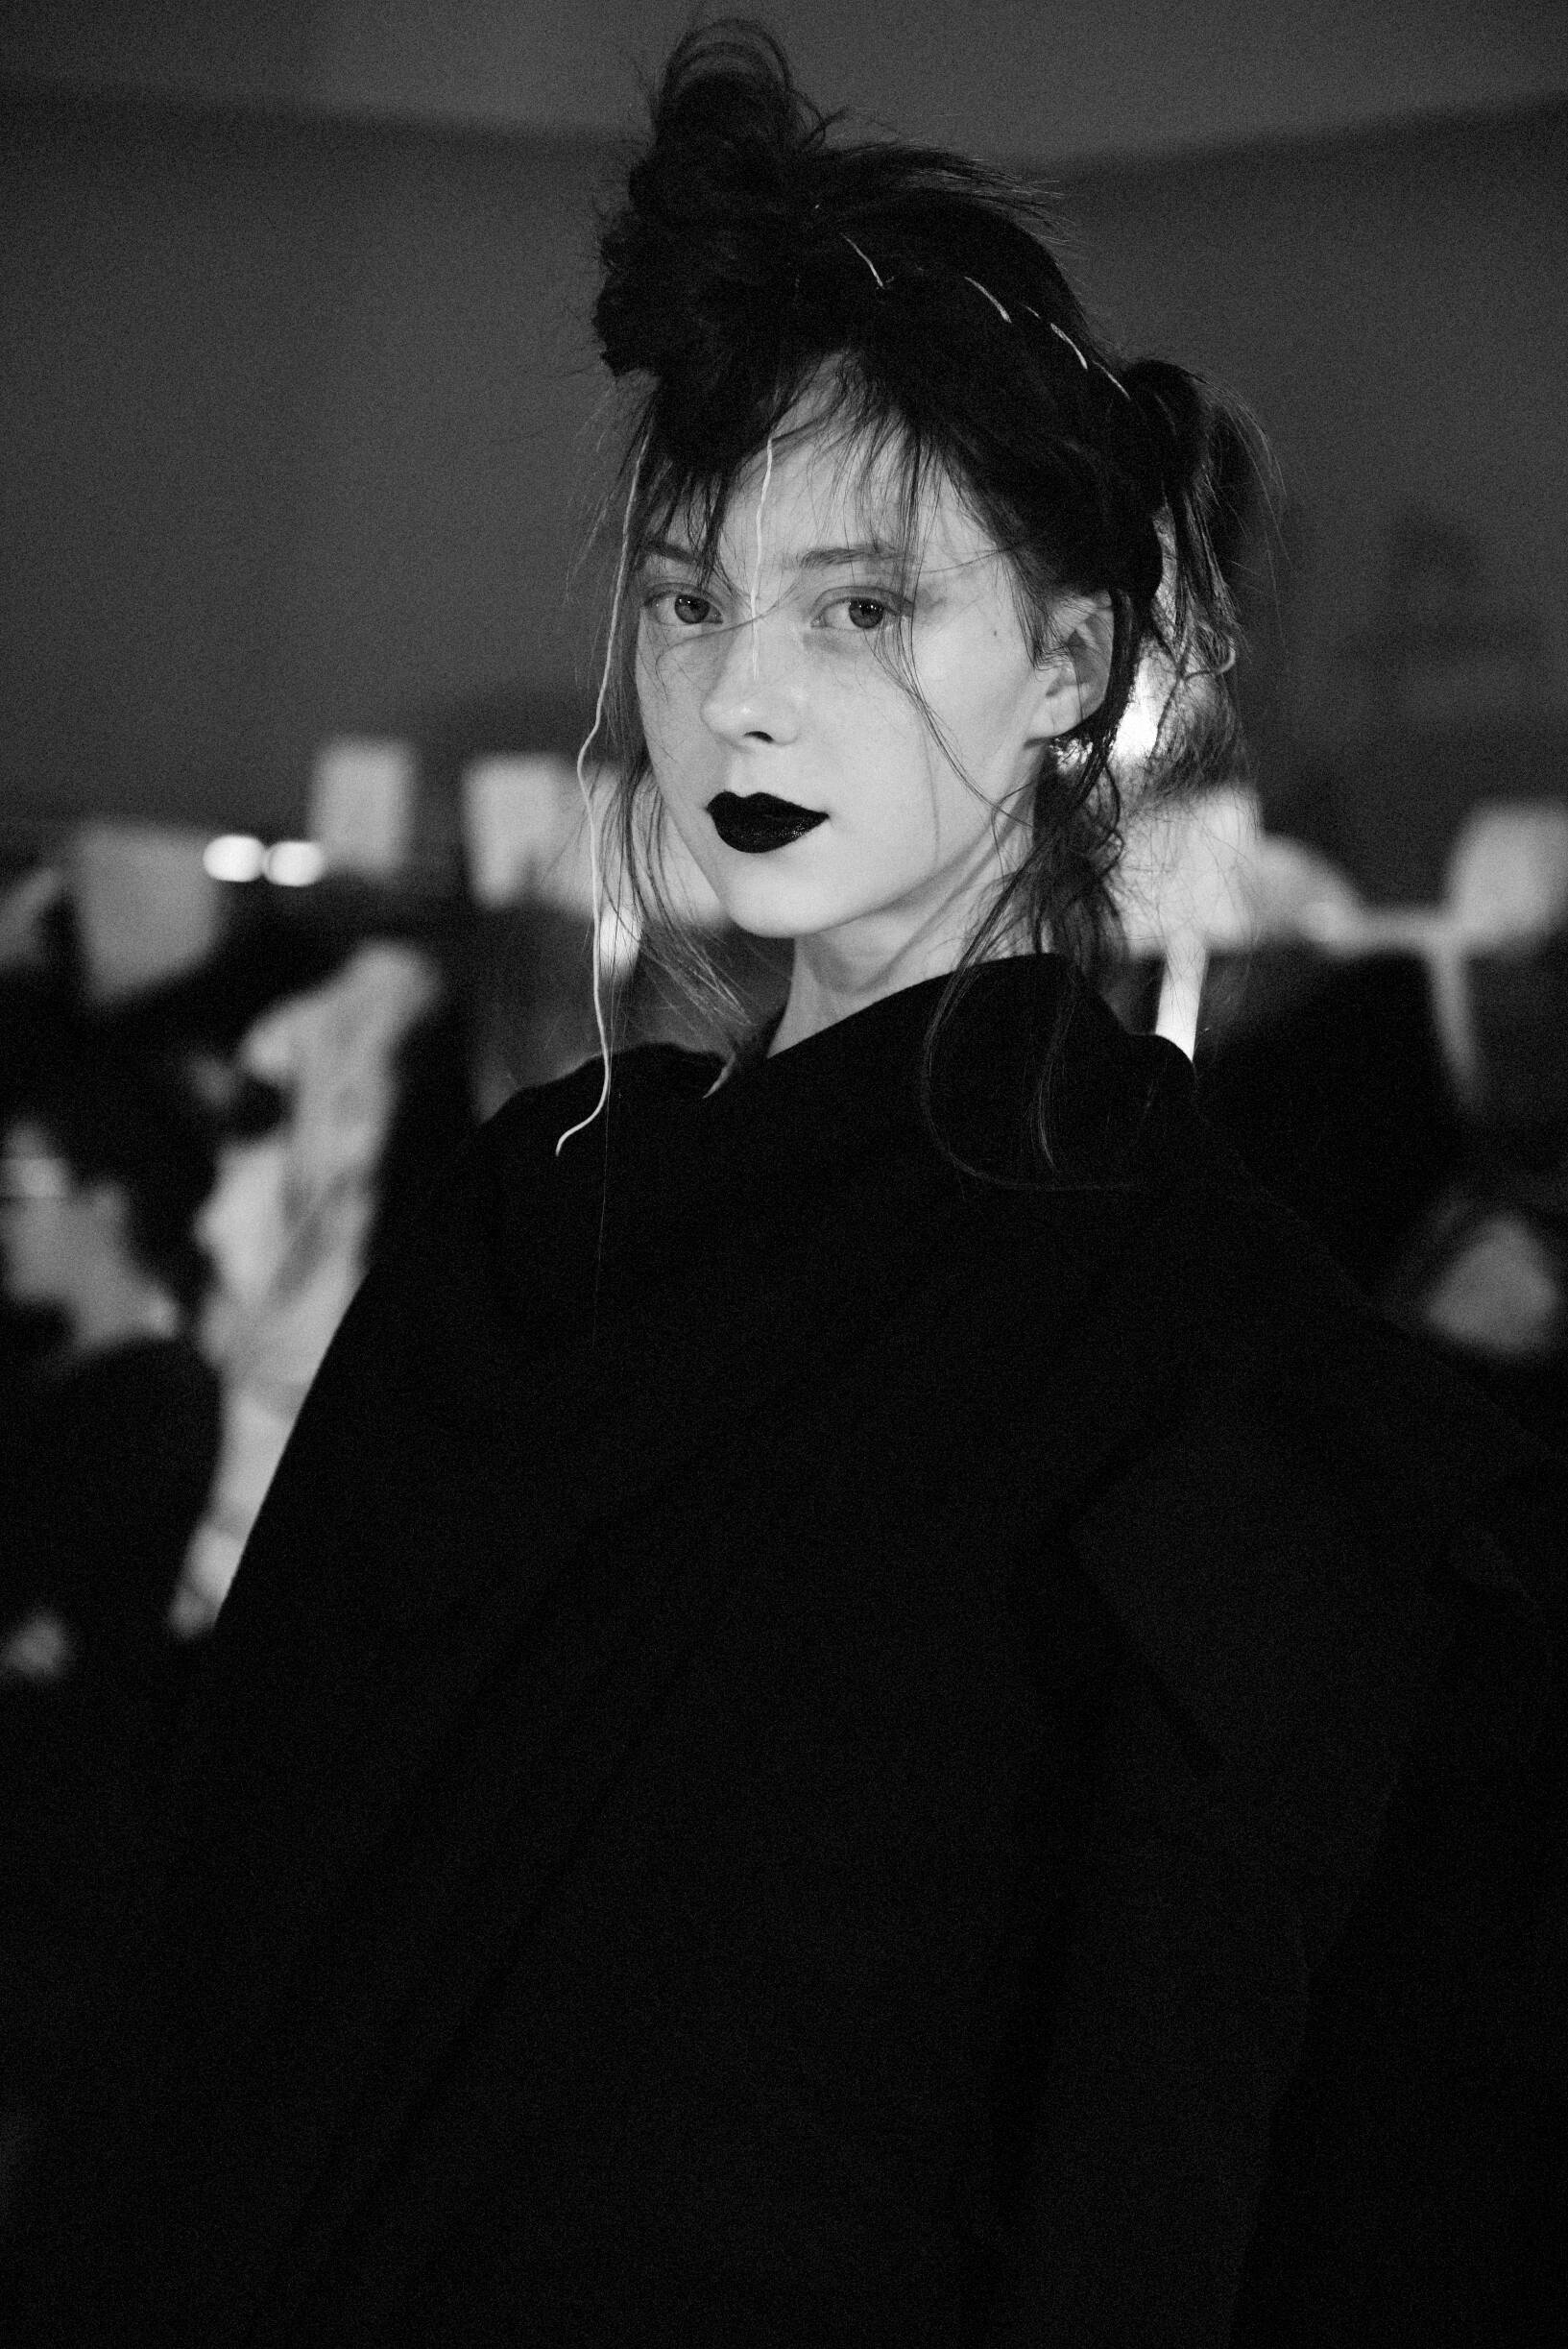 Backstage Yohji Yamamoto Model Fall Winter 2019